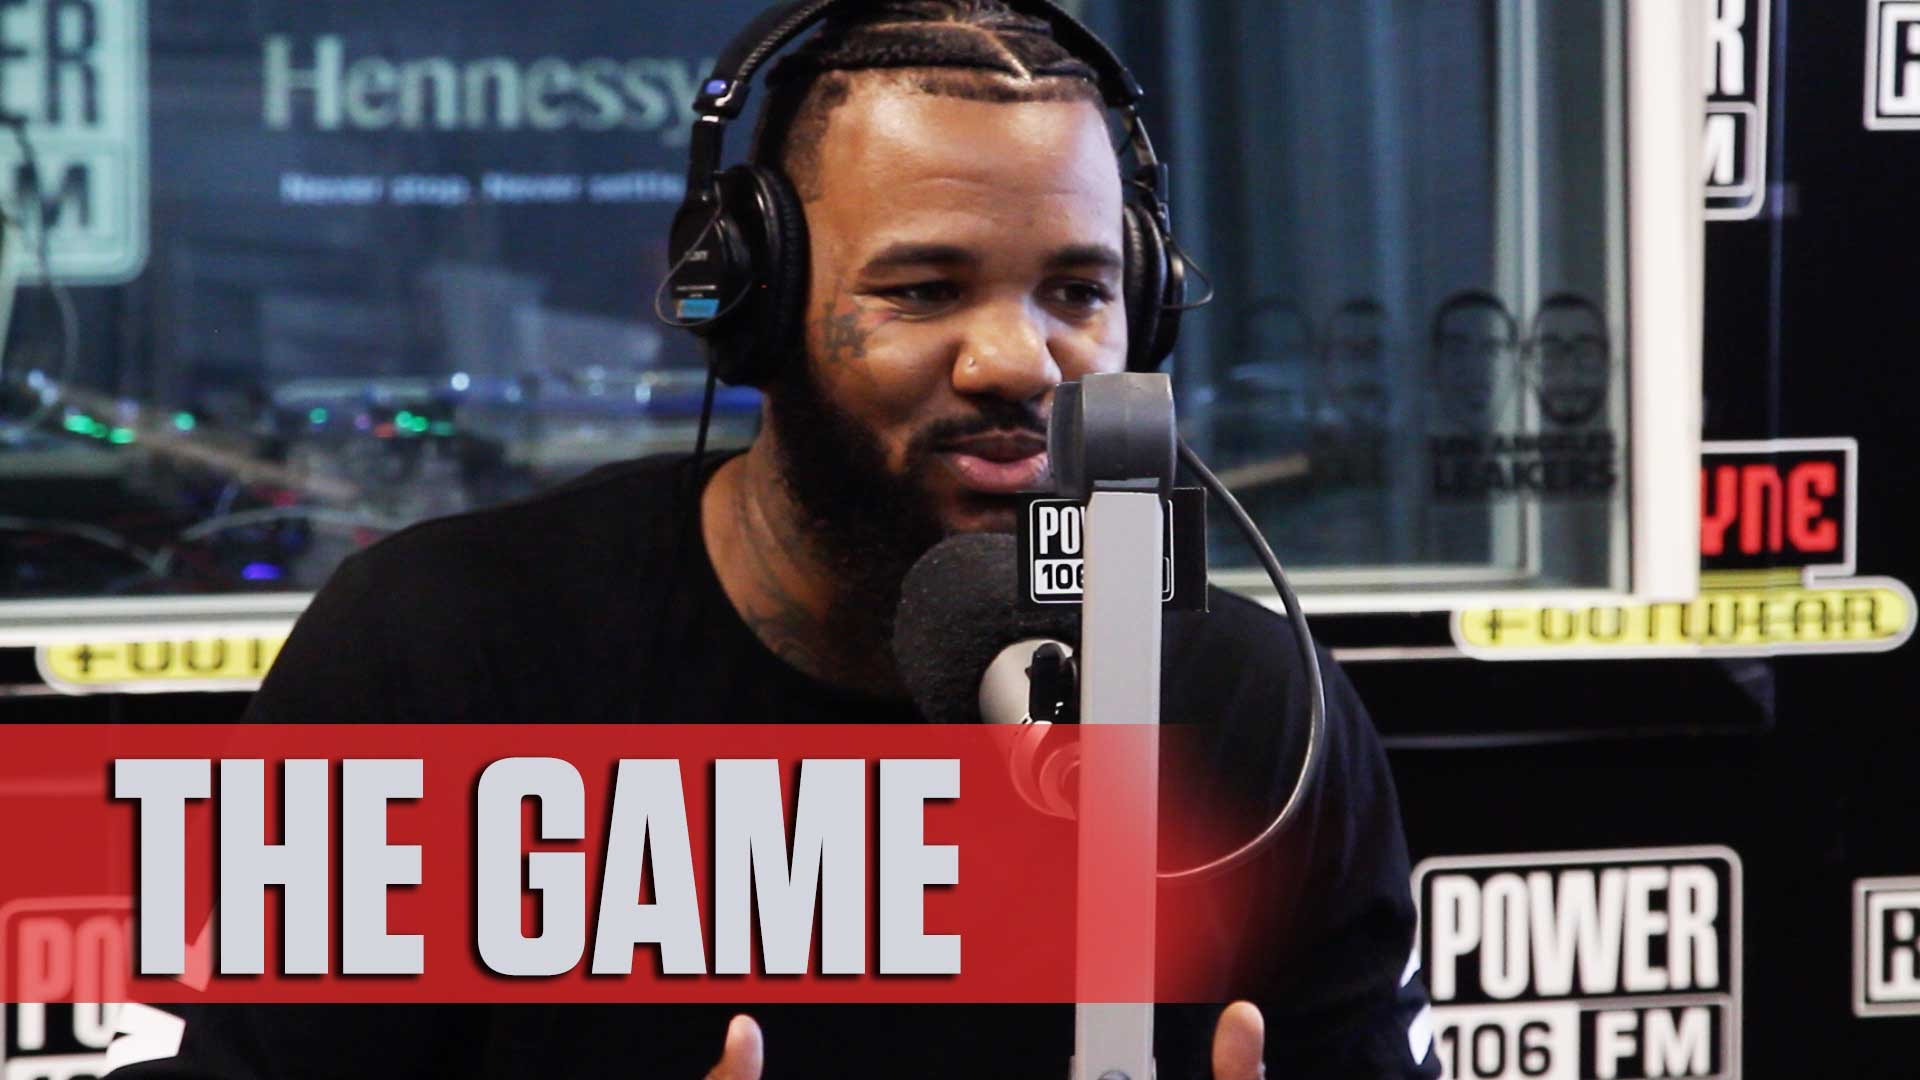 LIFE: The Game's Exclusive Poem On Race In America